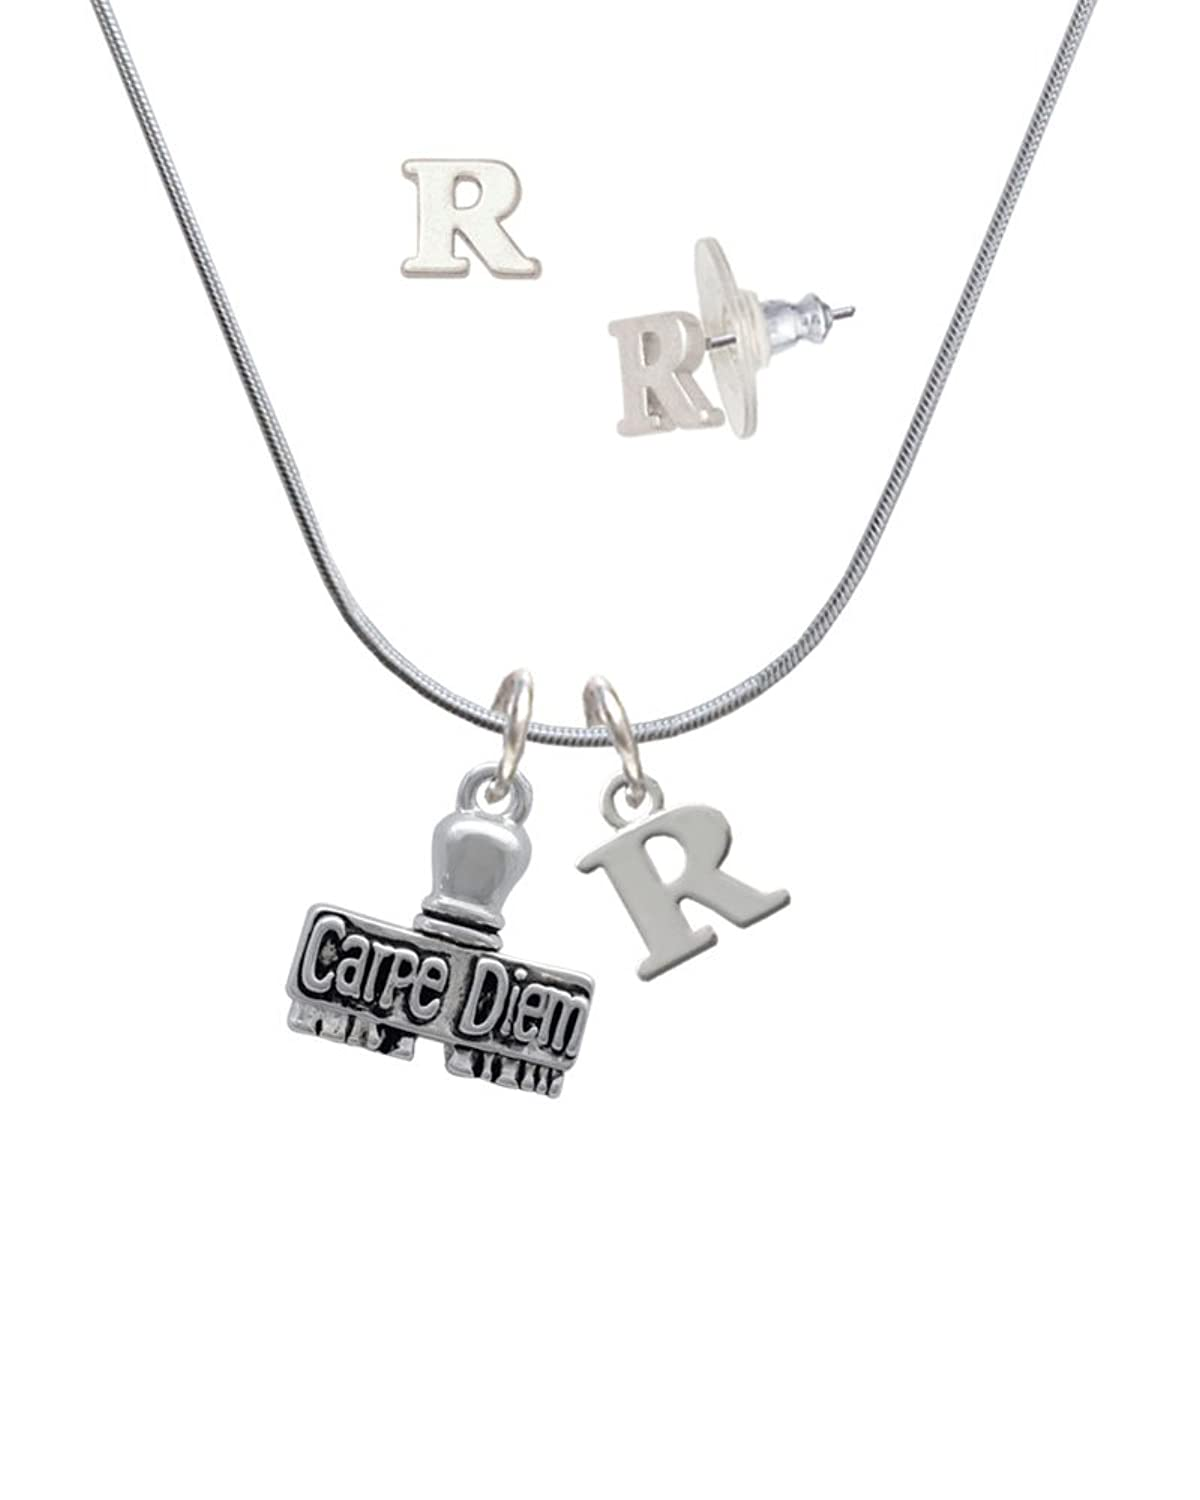 3-D ''Carpe Diem'' Stamp - R Initial Charm Necklace and Stud Earrings Jewelry Set